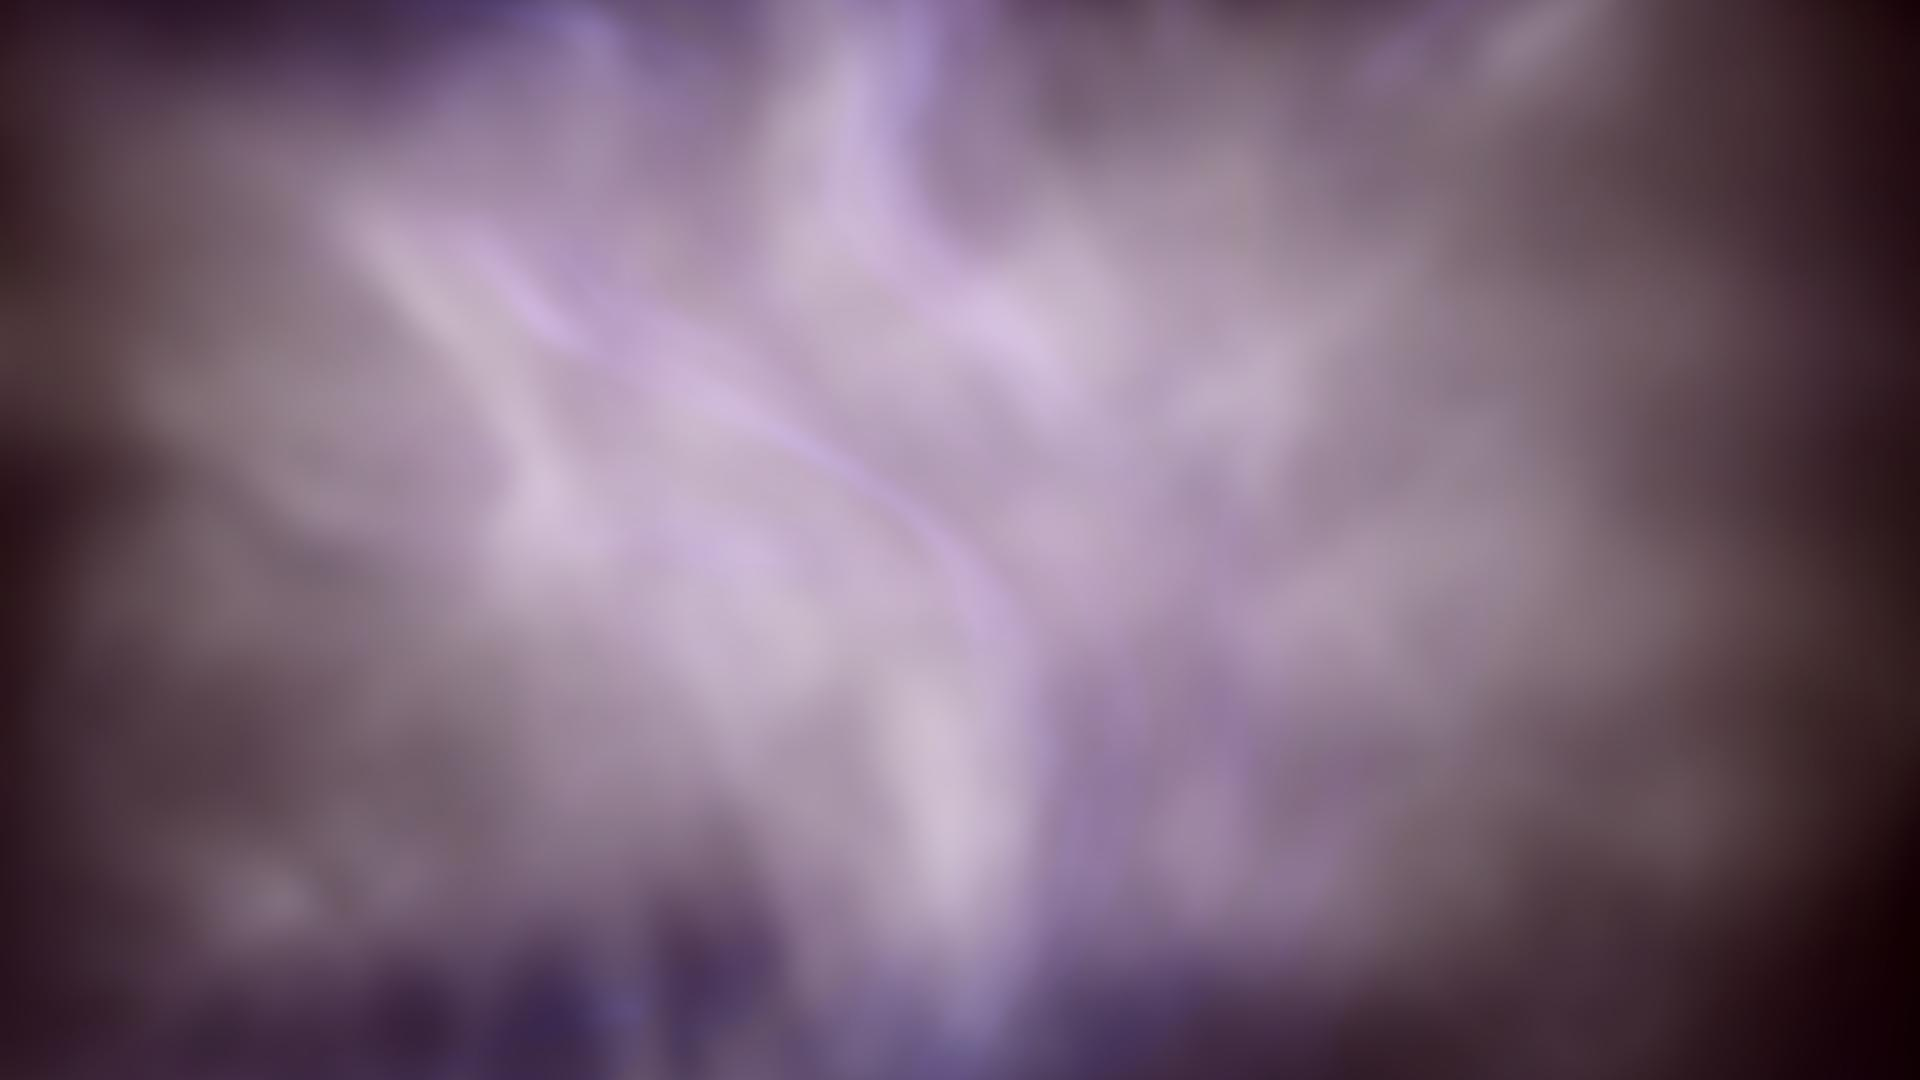 Lucid dreaming endless purple fog levekunst art of life many times when i let go of the content of the dream i find myself suspended in an endless purple fog biocorpaavc